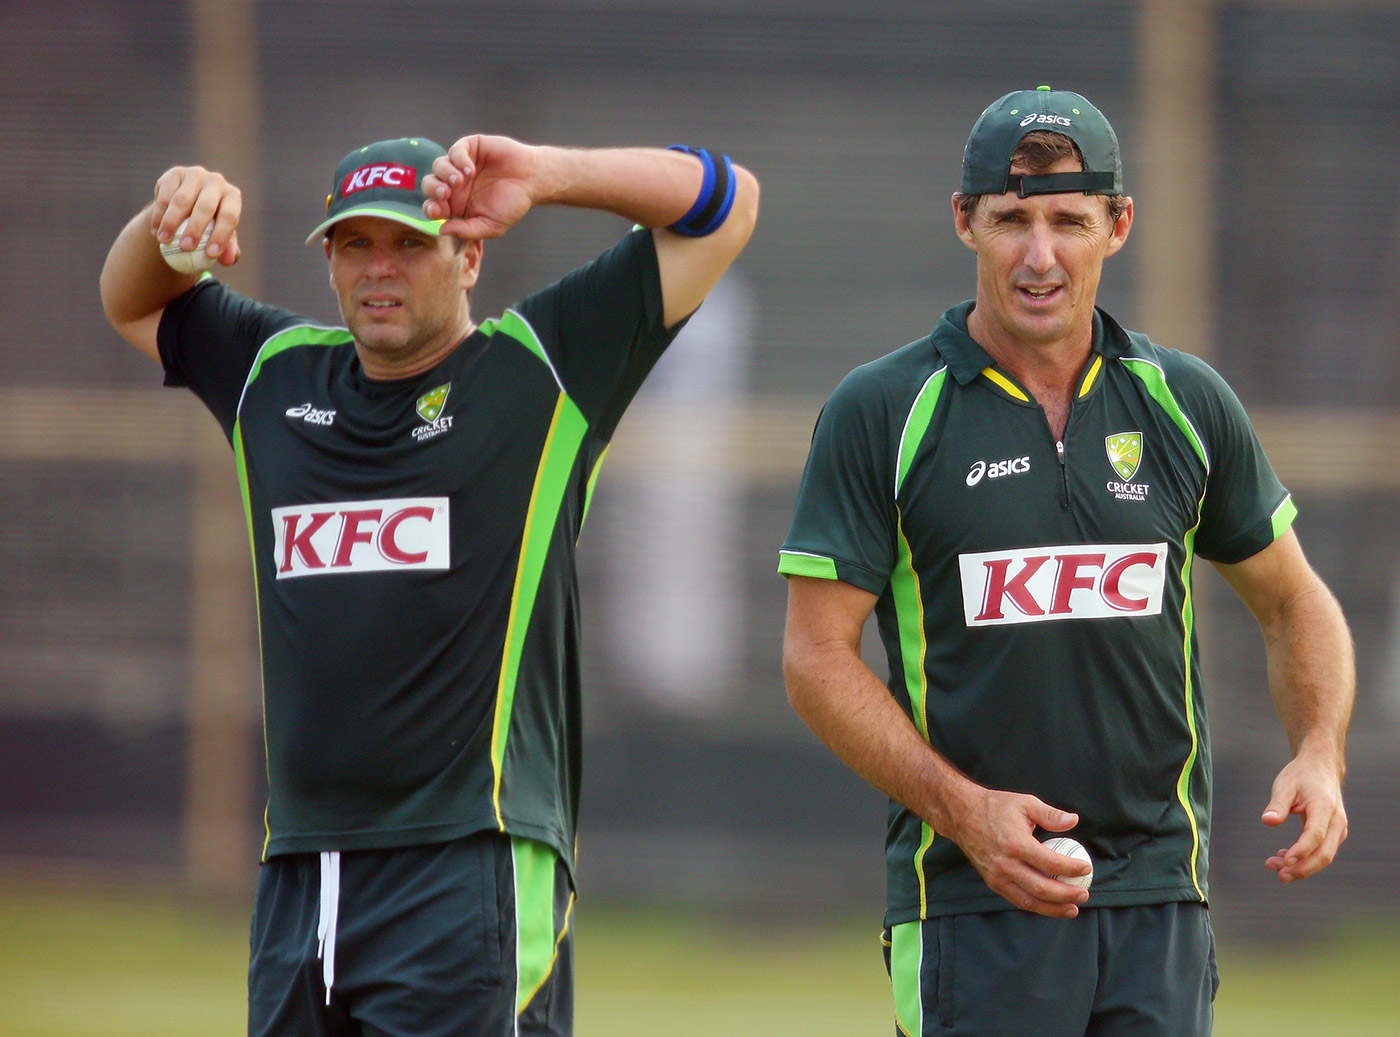 Brad Company: Hodge and Hogg at the 2014 World T20. Both went on to play T20 for another four years